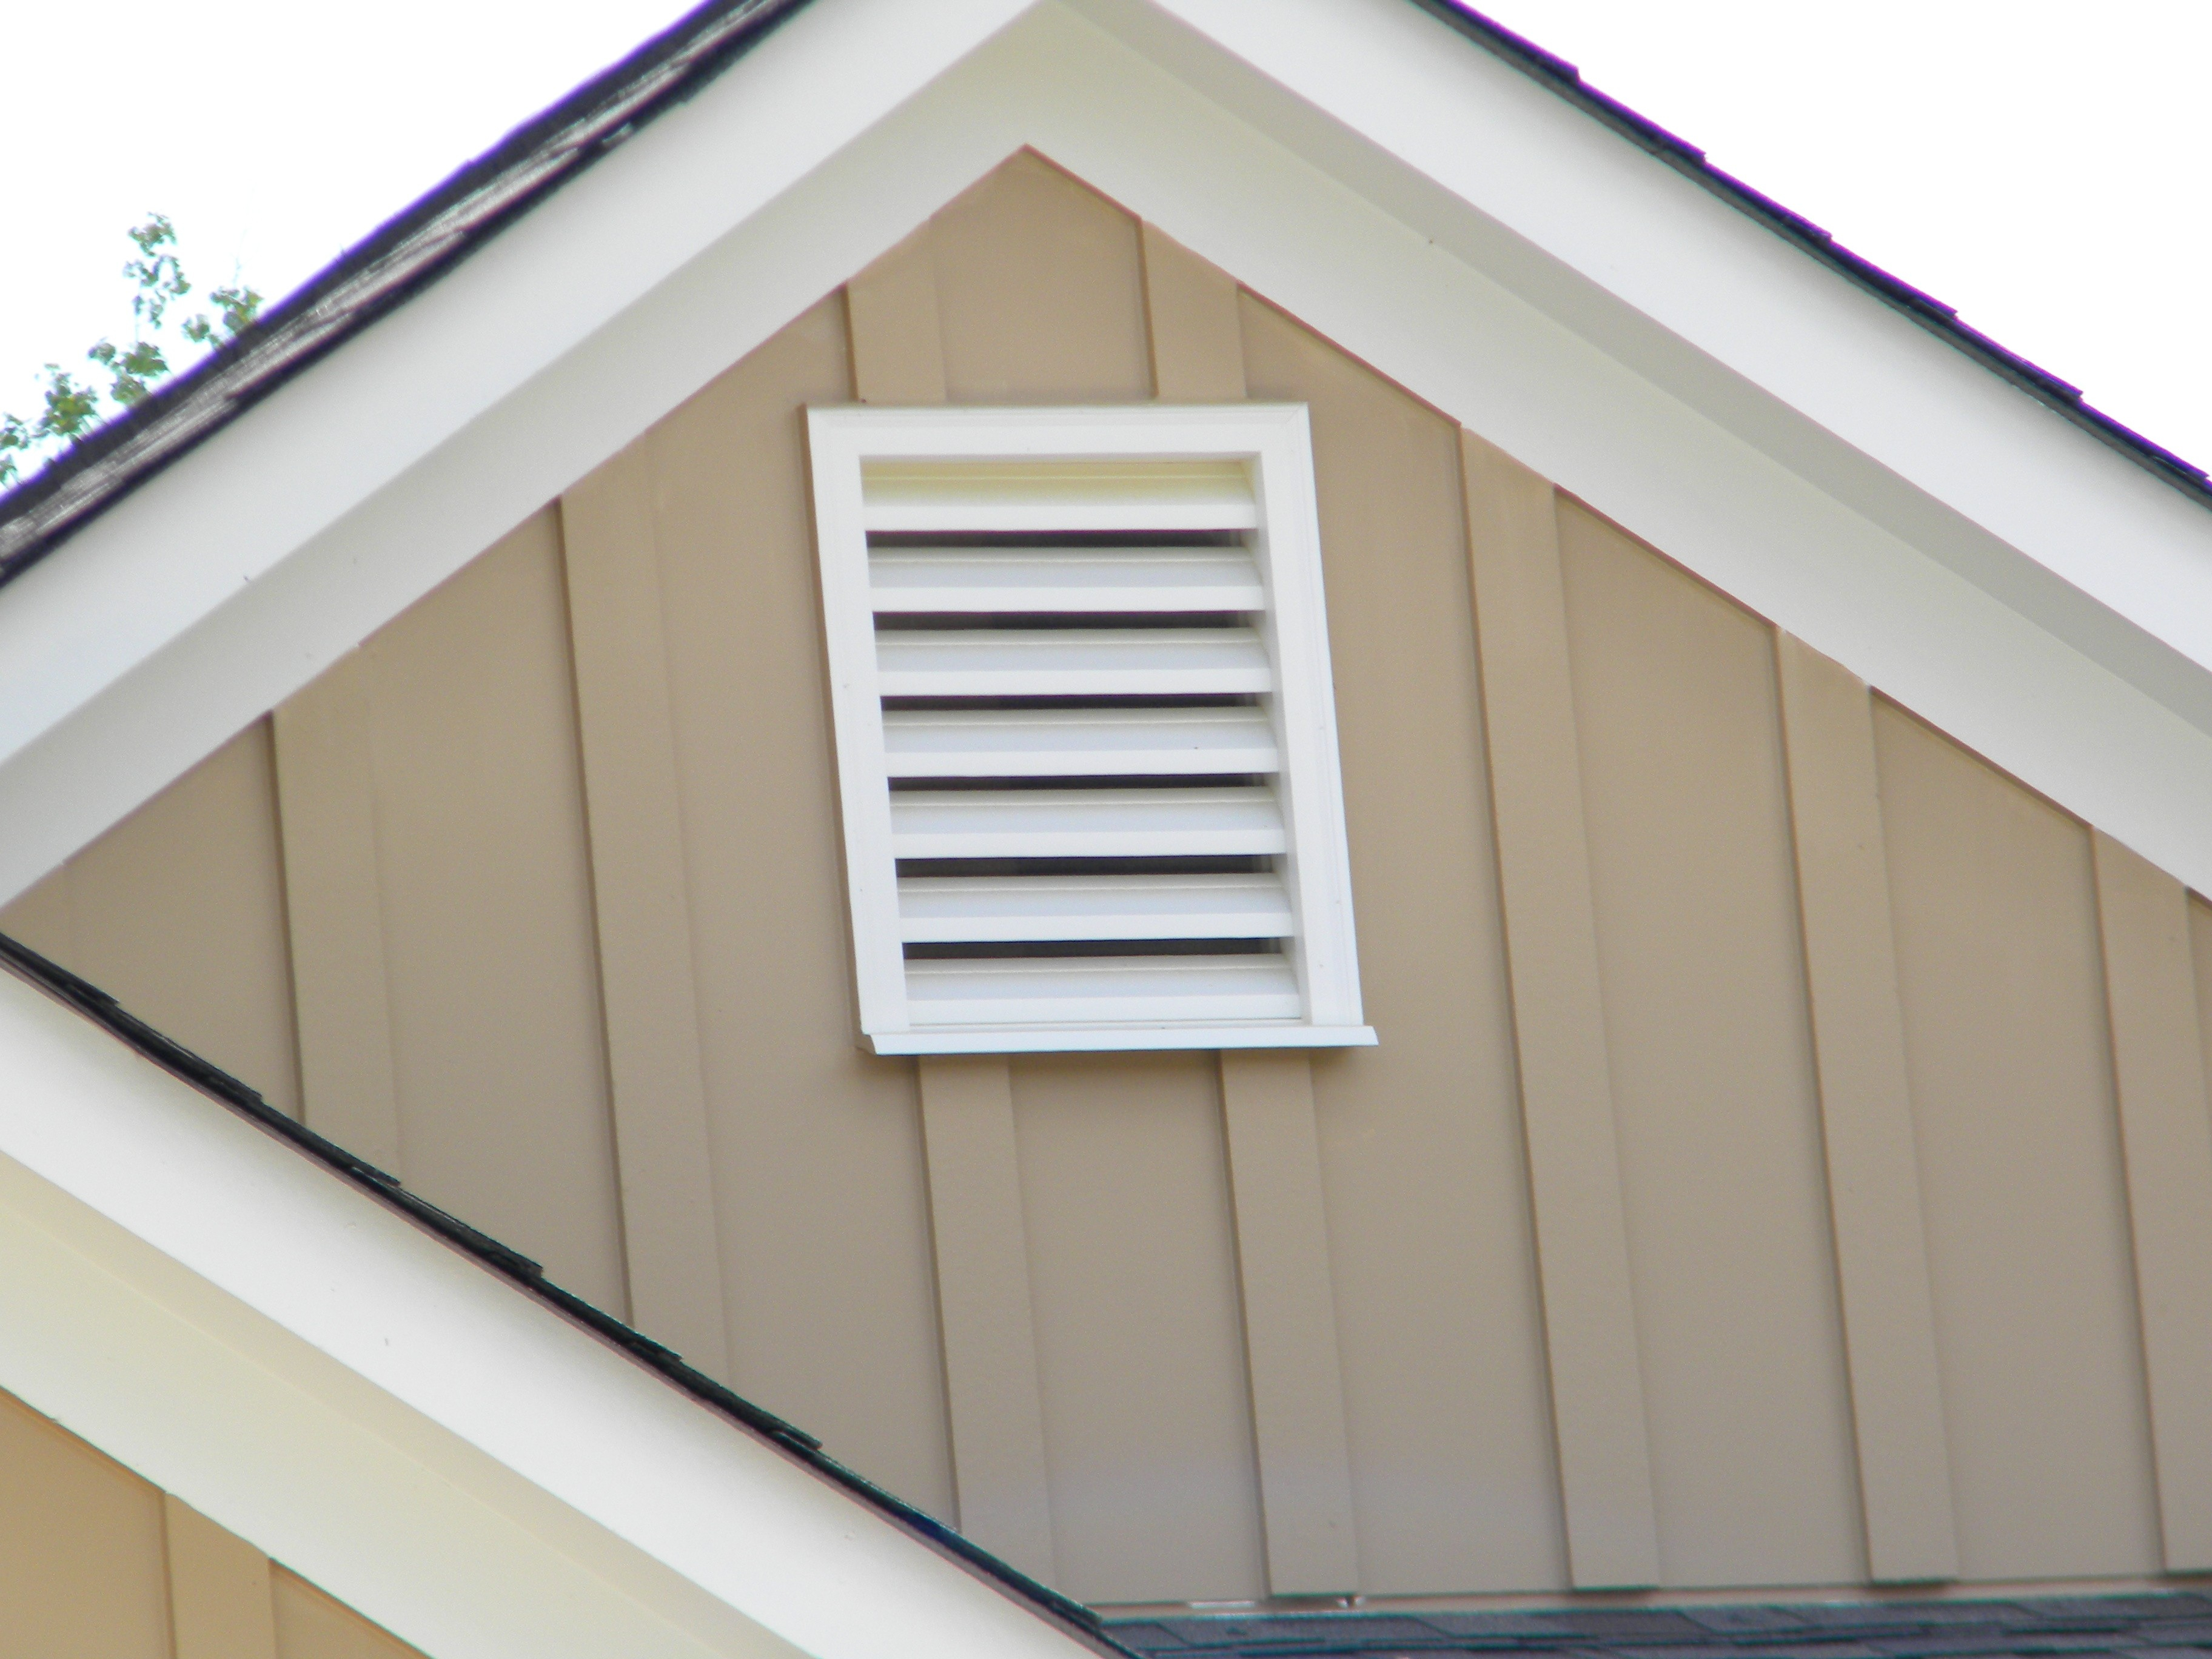 Gable End Siding Ideas - 1500+ Trend Home Design - 1500+ Trend Home ...